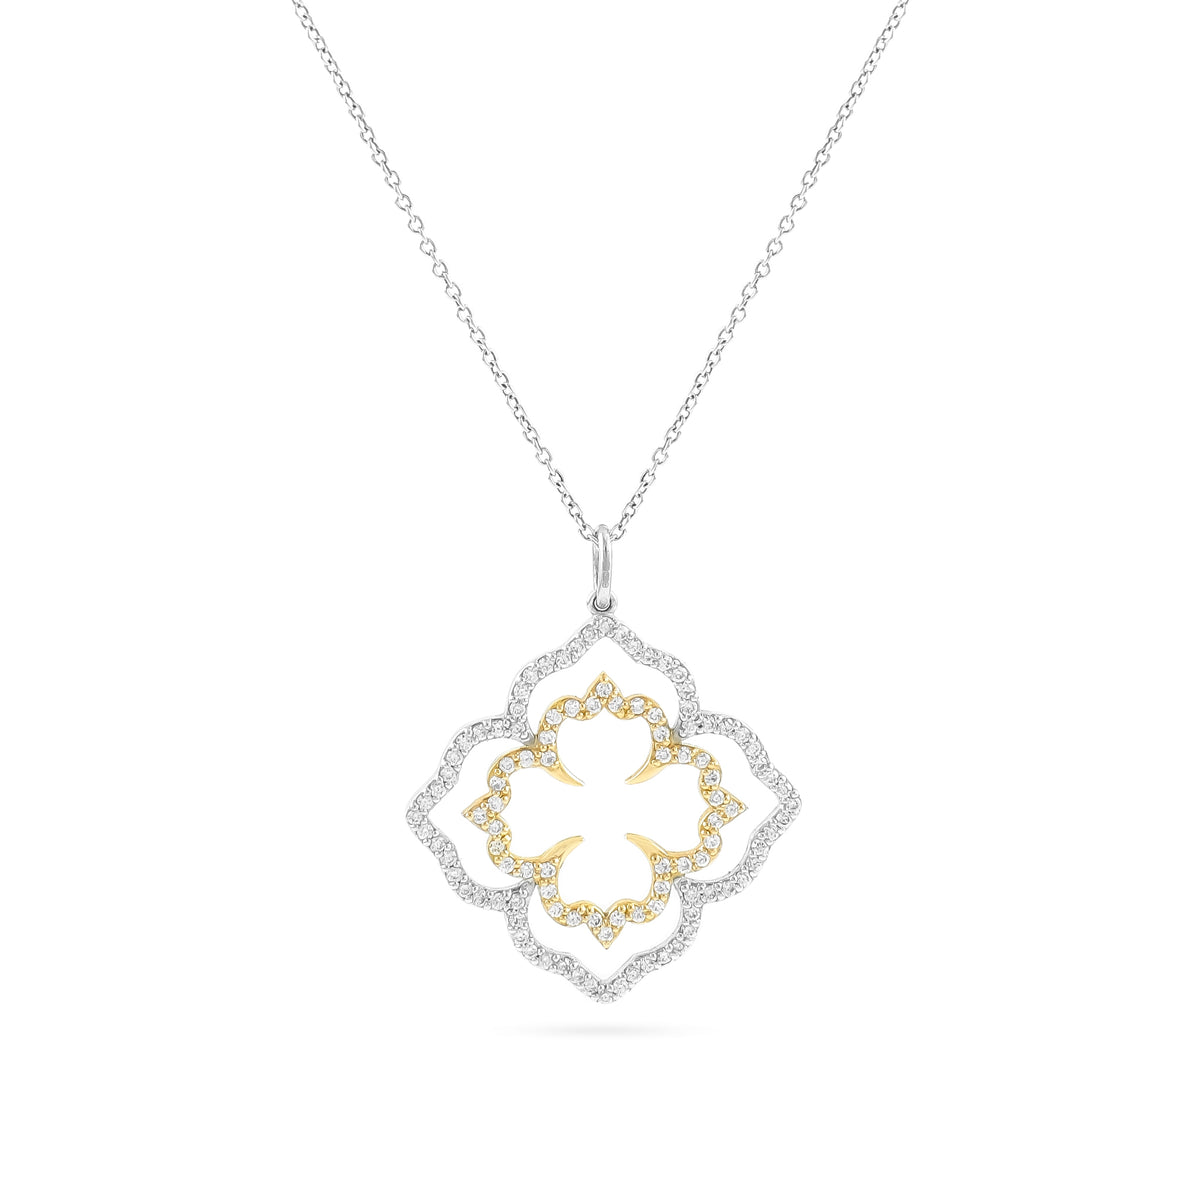 18ct Two Colour Diamond Eden Pendant